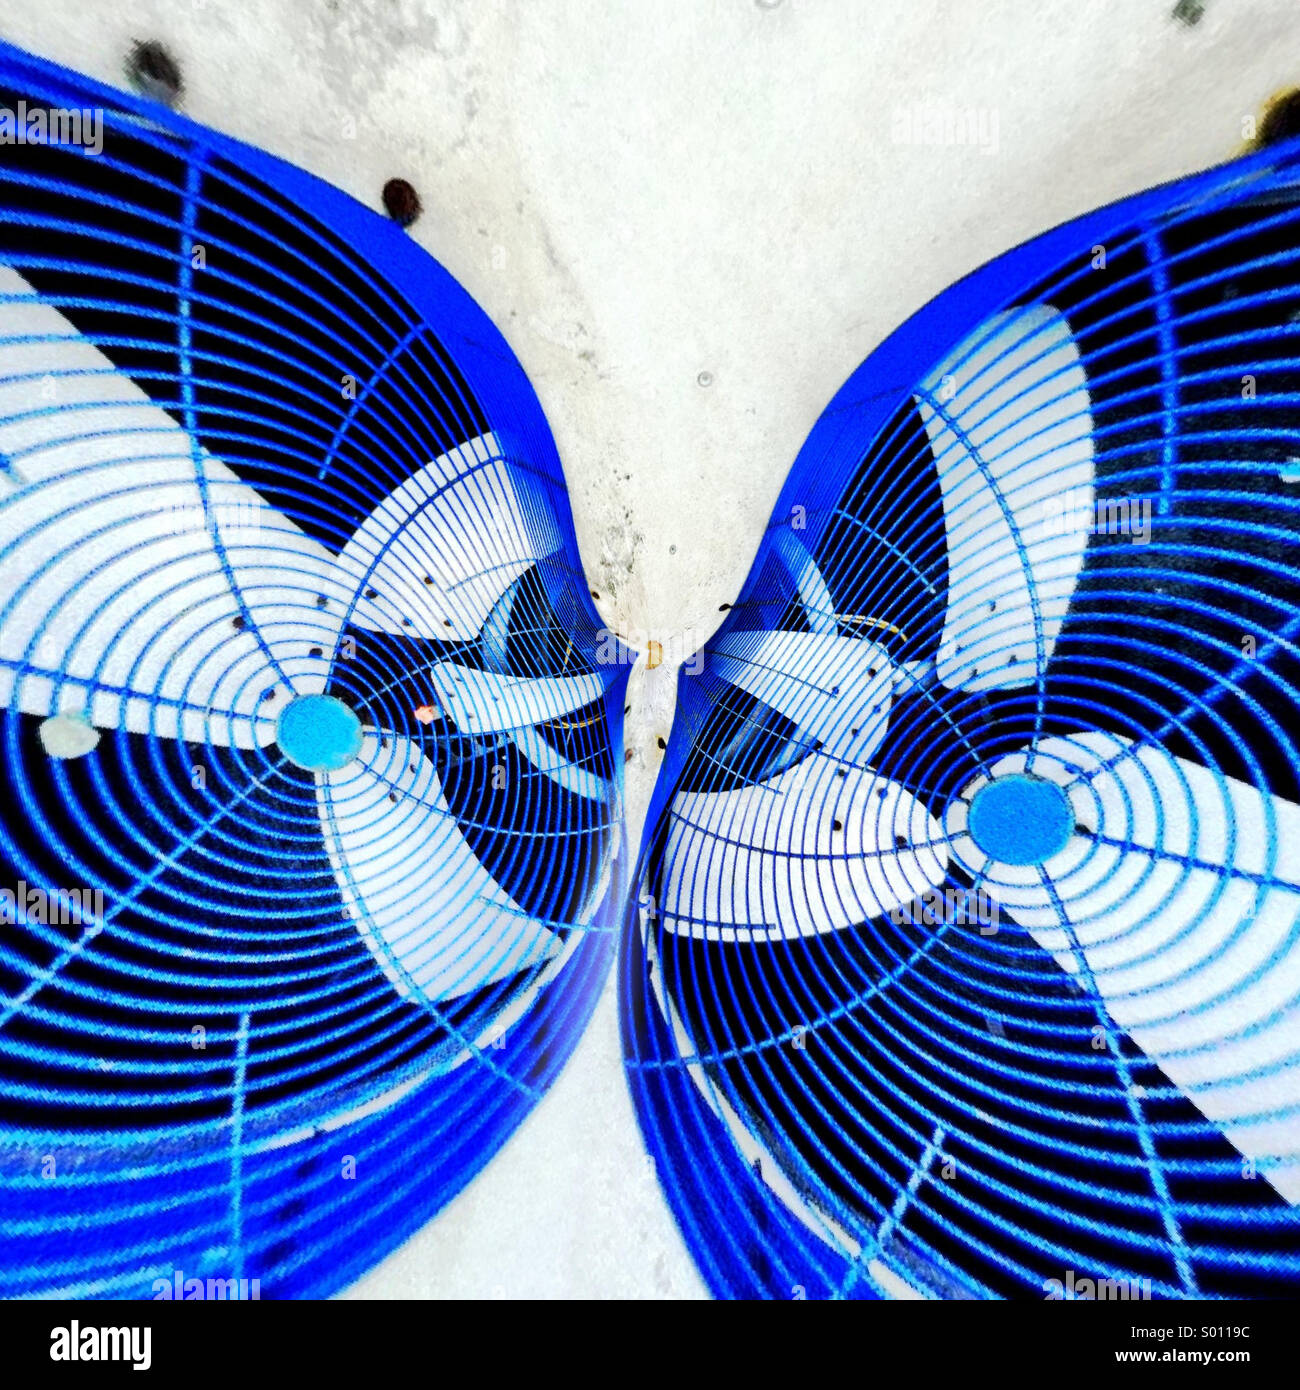 Abstract distortion of two large outdoor fans that look like kissing fish - Stock Image